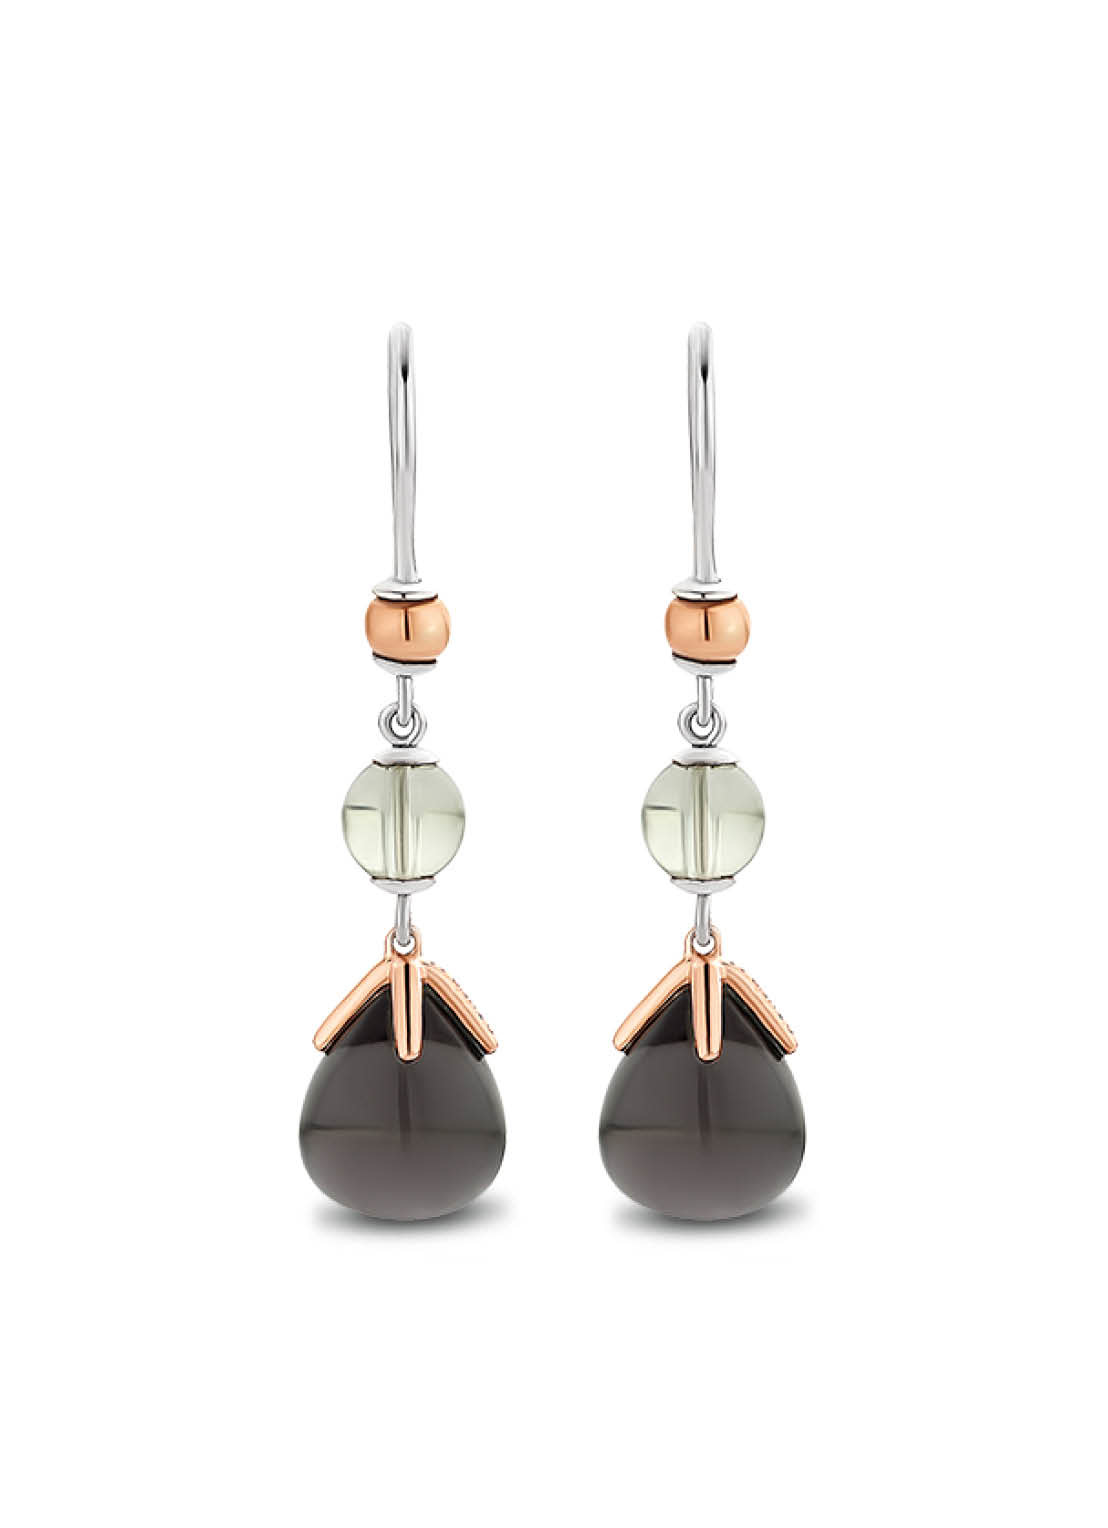 TI SENTO - Milano Earrings 7810GB-2